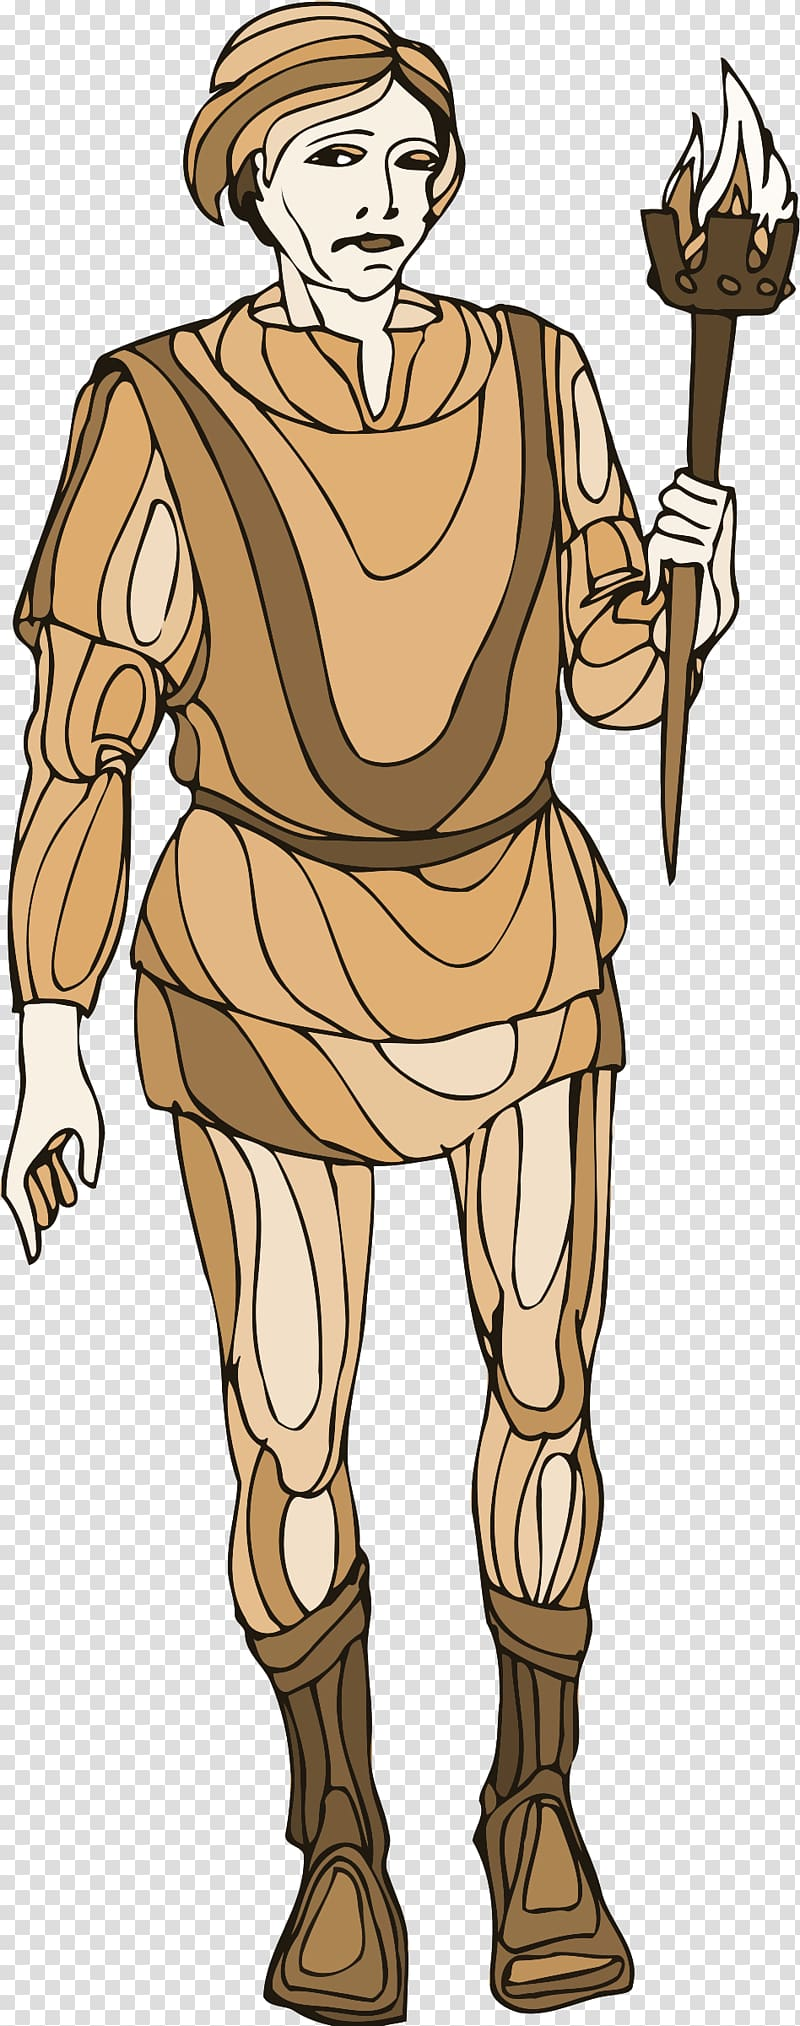 Banquo PNG clipart images free download.